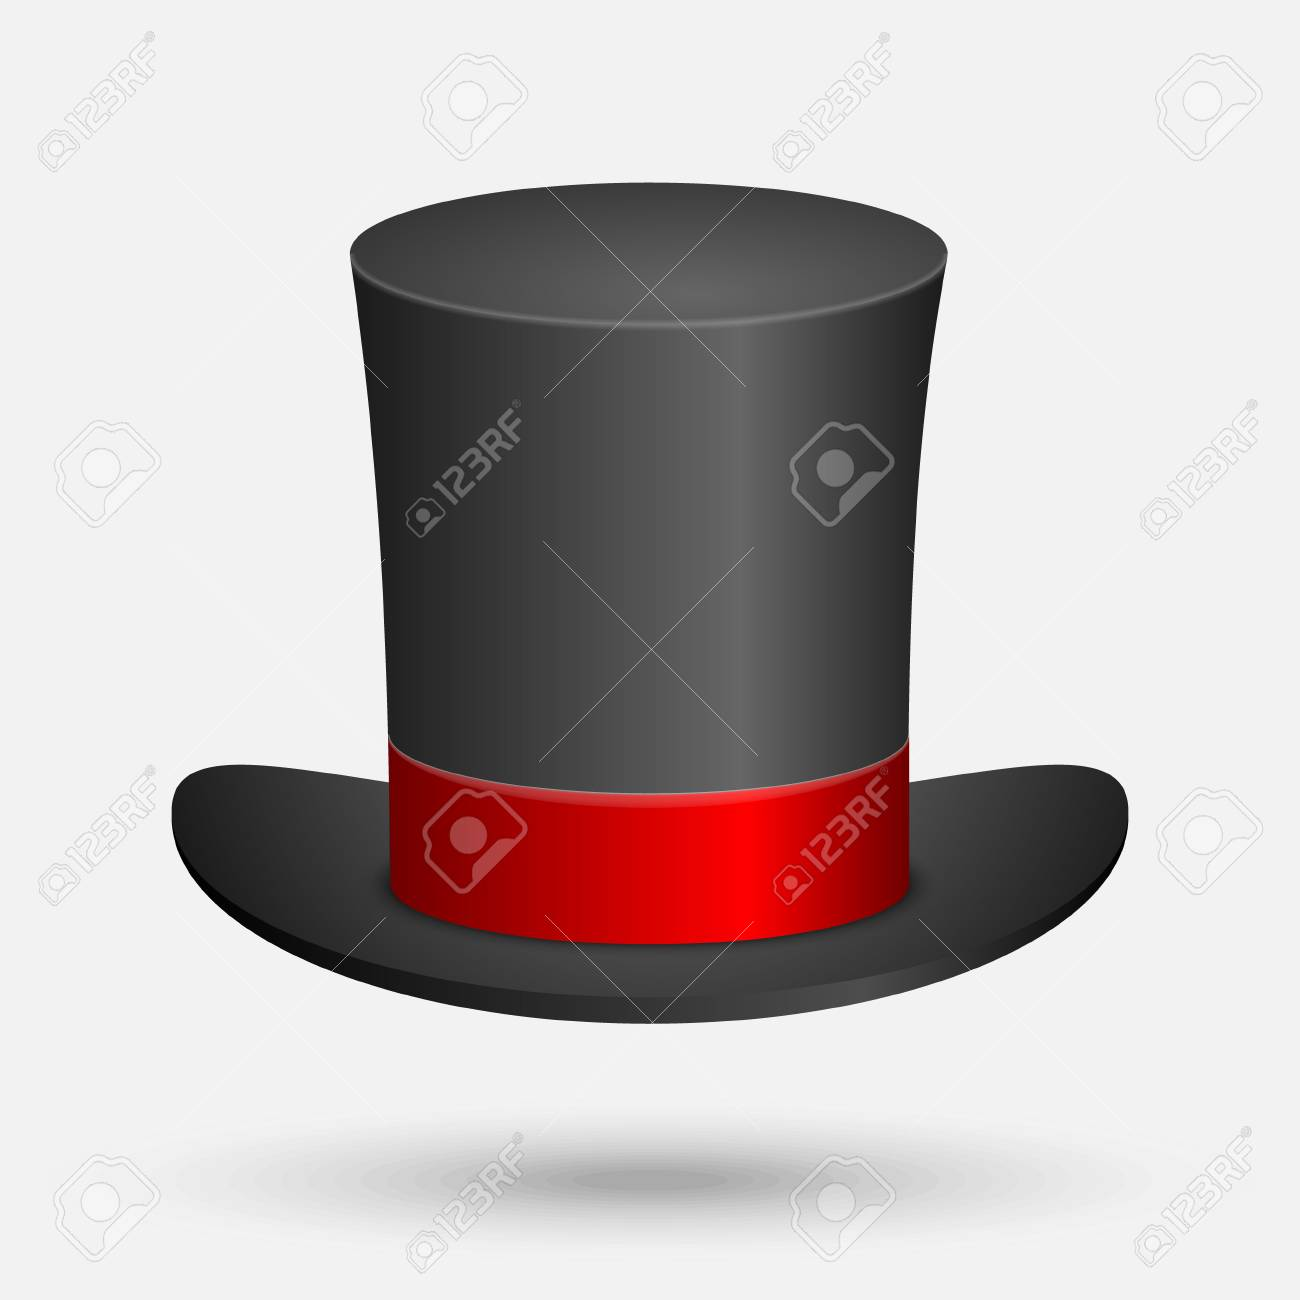 ad2f3f064 Black Top Hat vector illustration isolated on white background